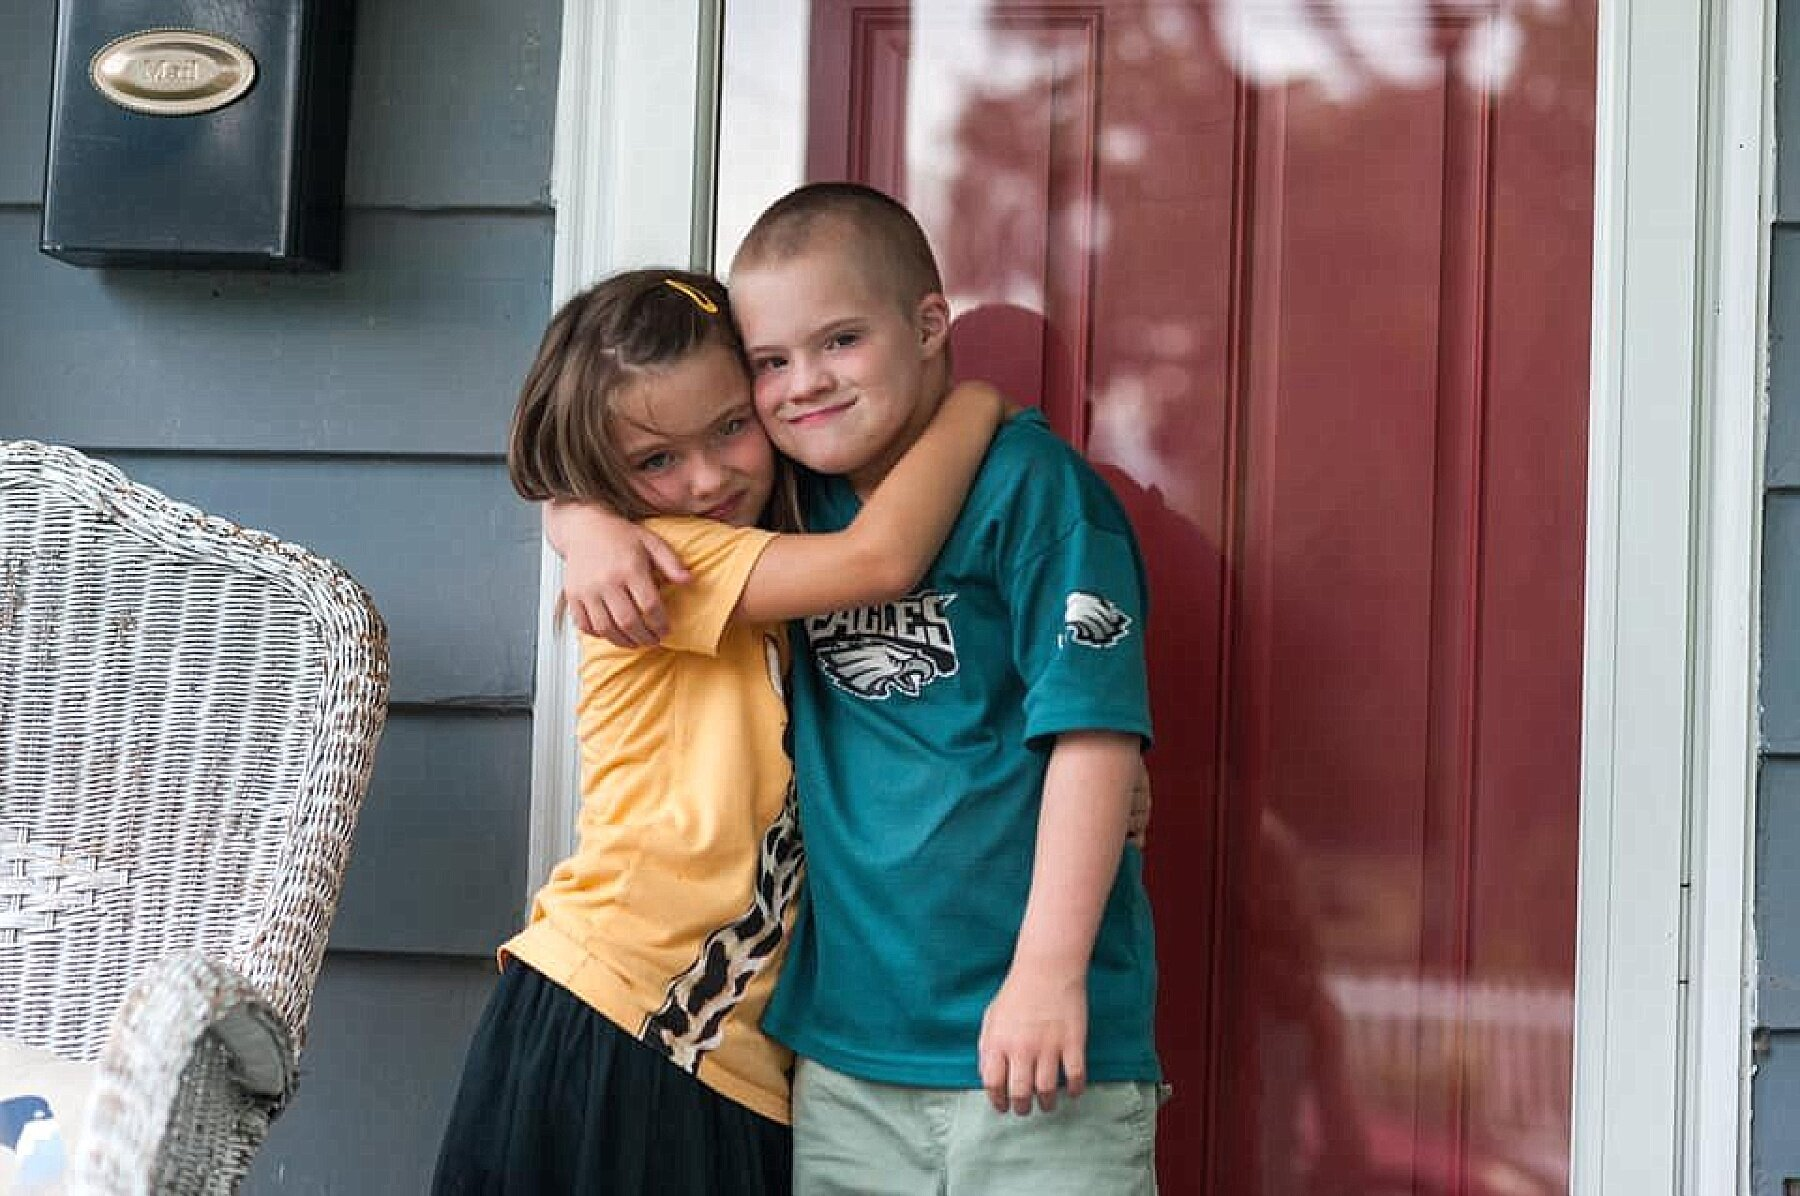 Wendy Zook Photography | Down Syndrome Awareness, Down Syndrome family, sibling with Down Syndrome, siblings, brother and sister, parent of child with Down Syndrome, DS awareness